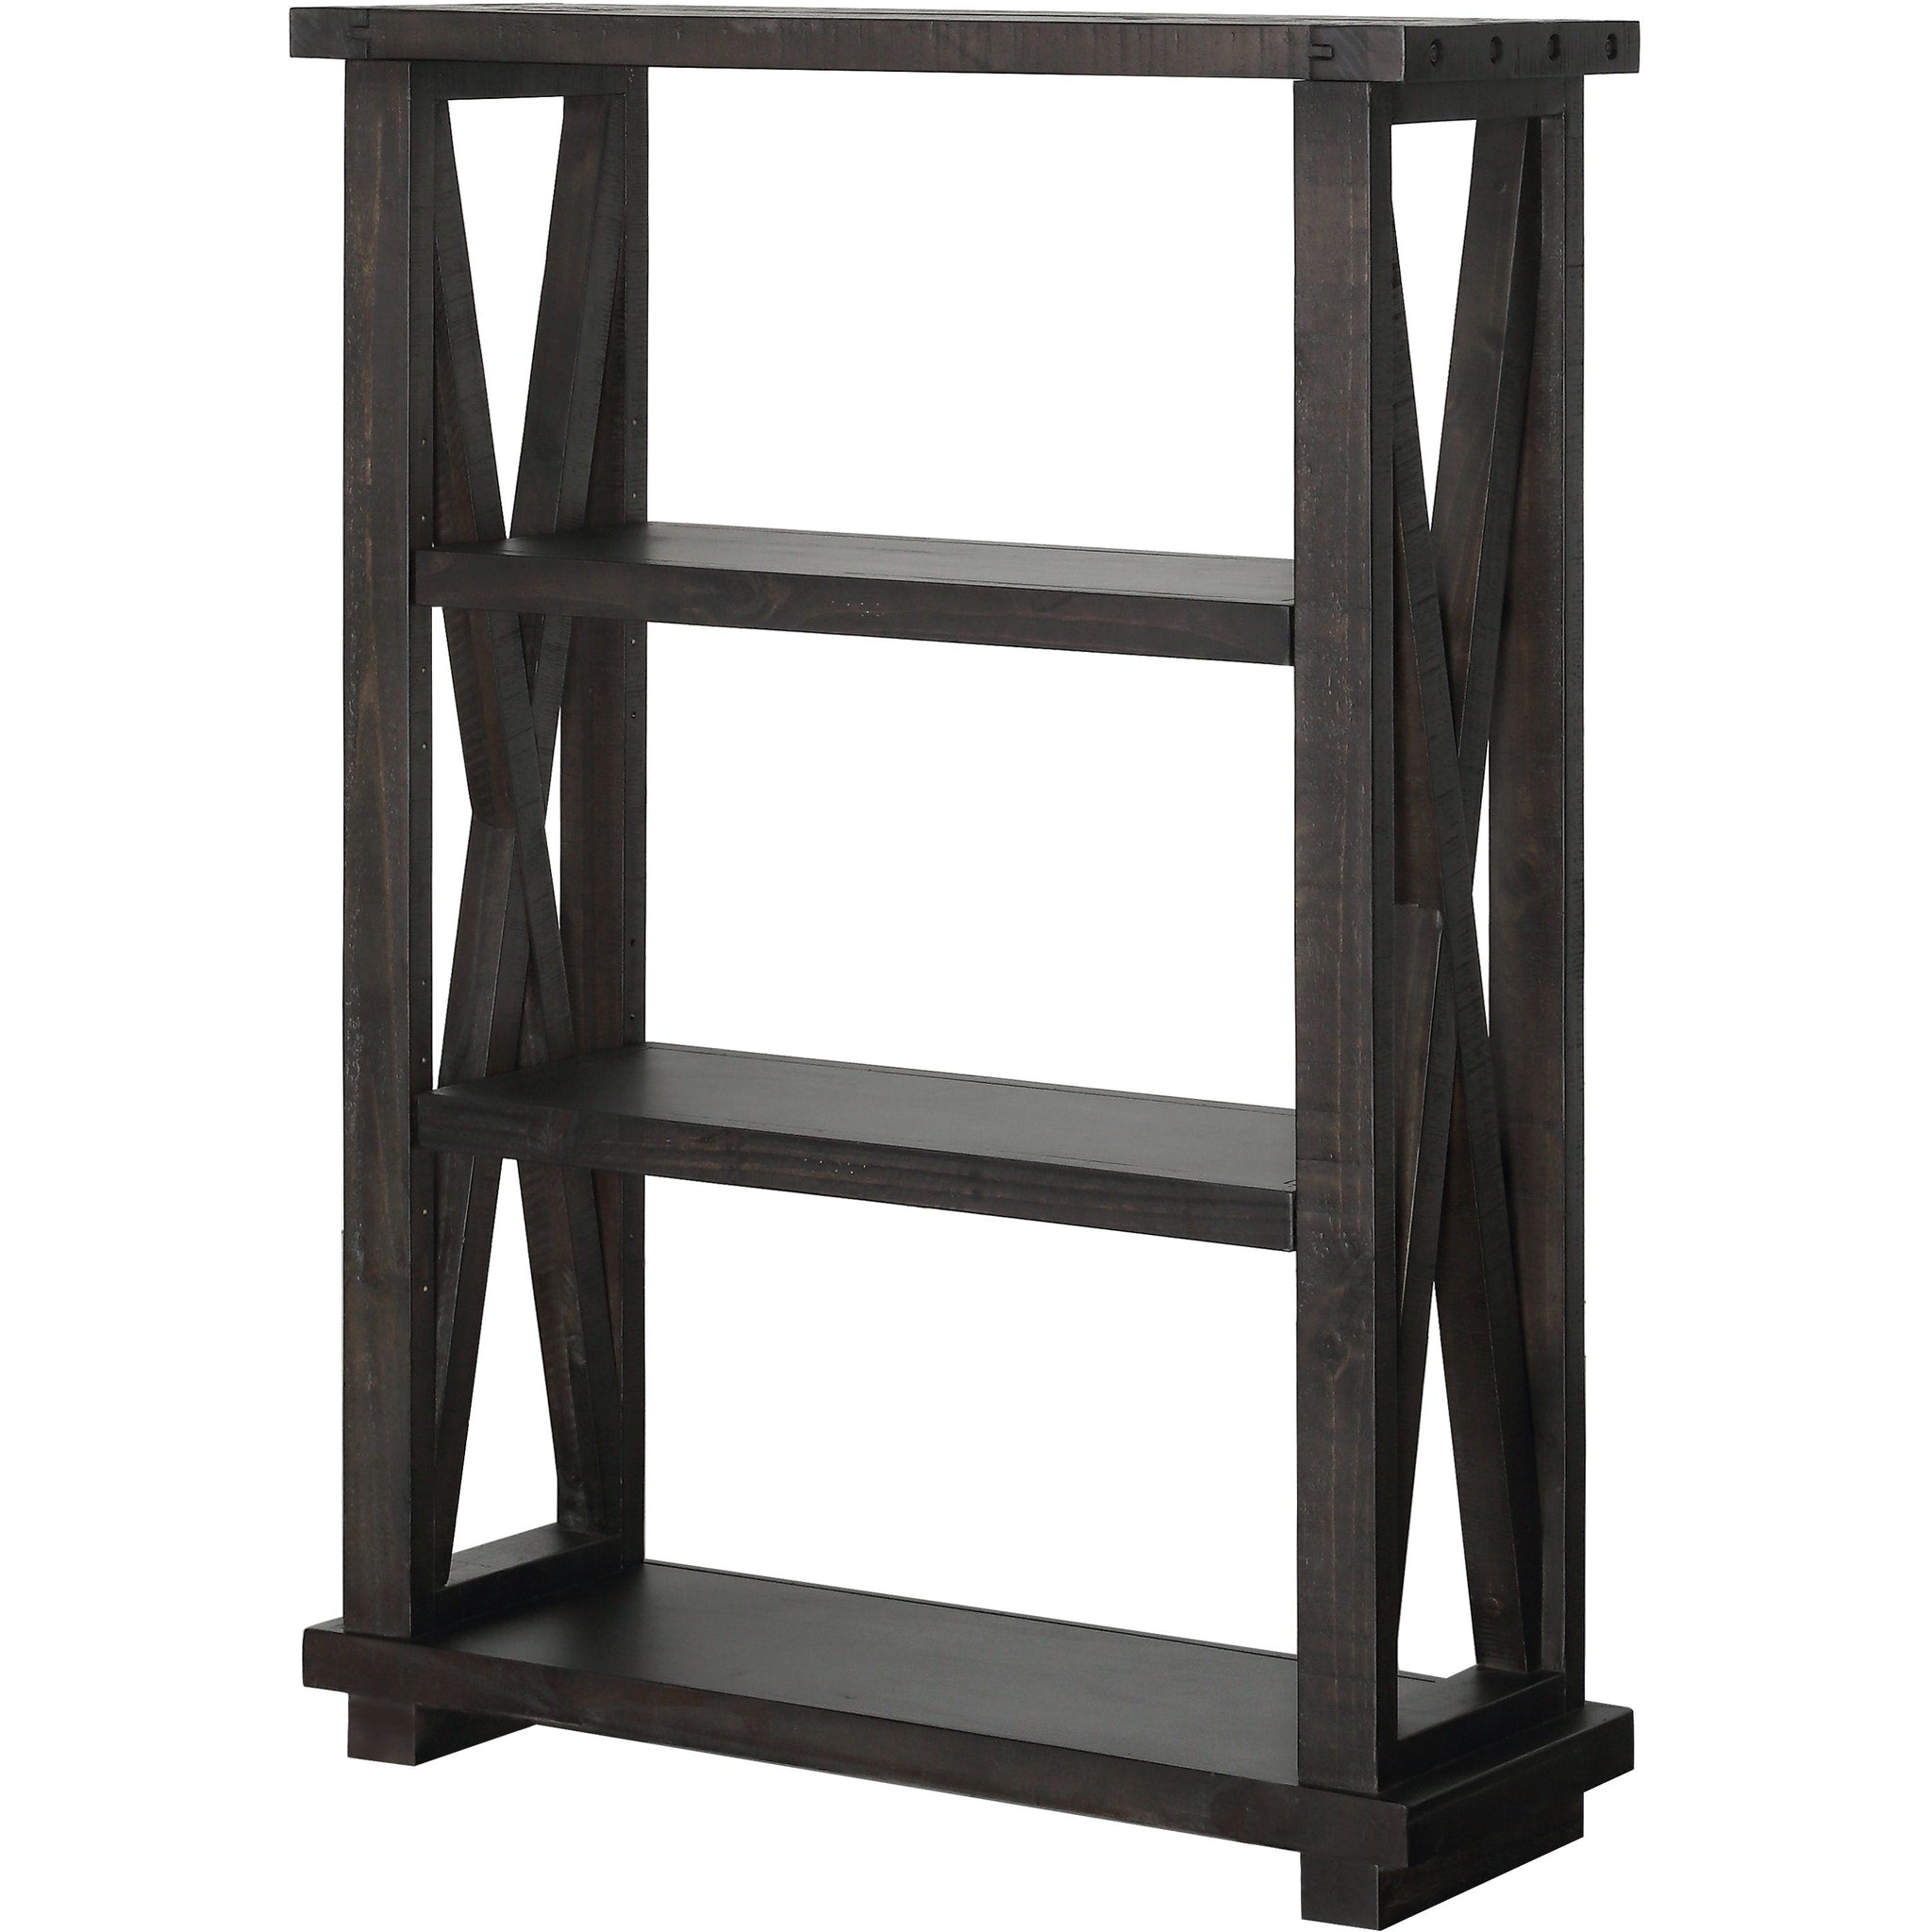 "Yosemite Solid Wood 54x39"" Bookshelf in Café"